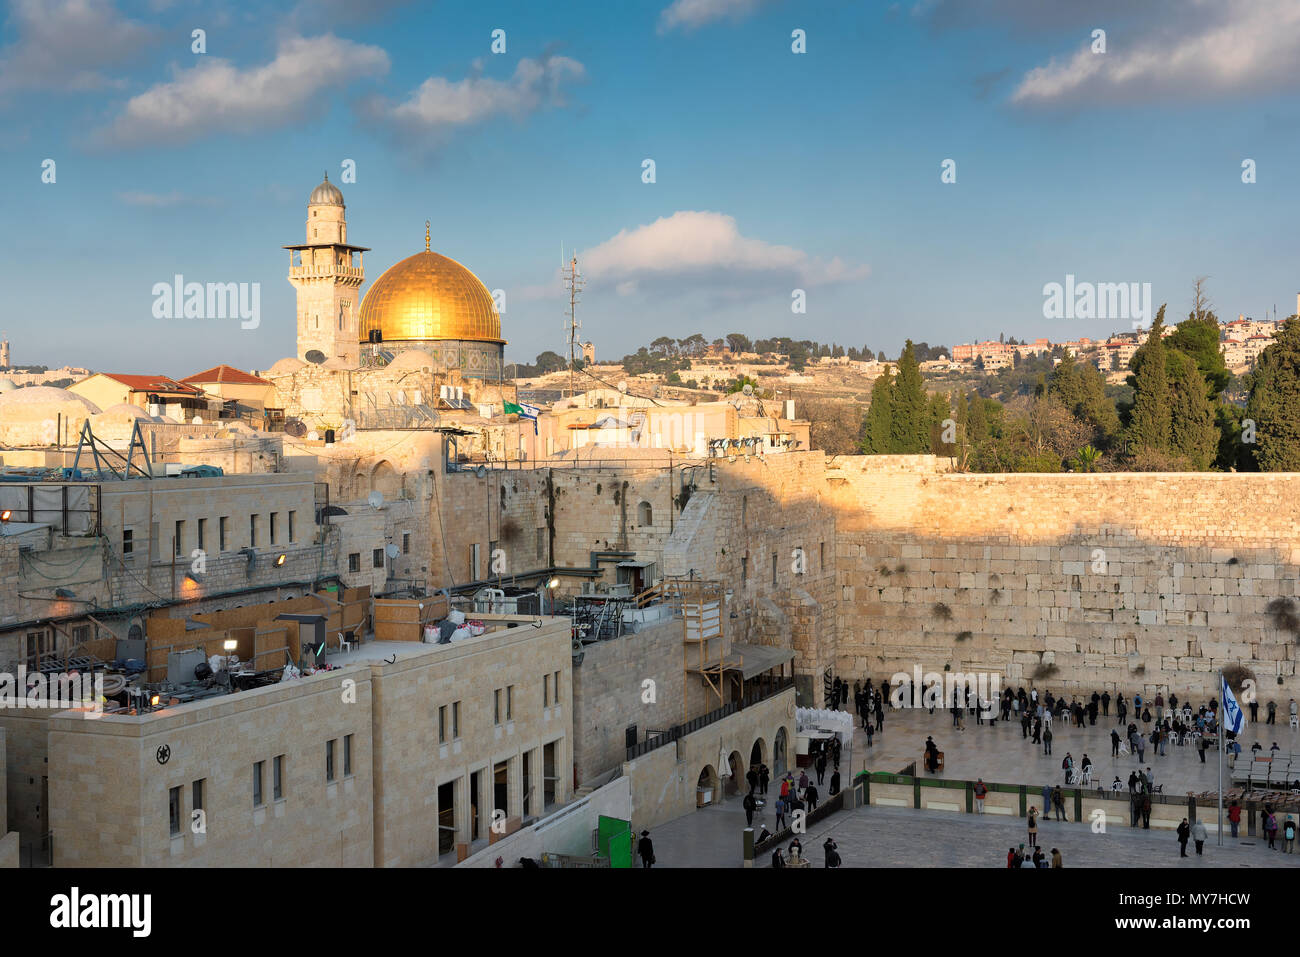 Western Wall and golden Dome of the Rock in Jerusalem Old City, Israel - Stock Image